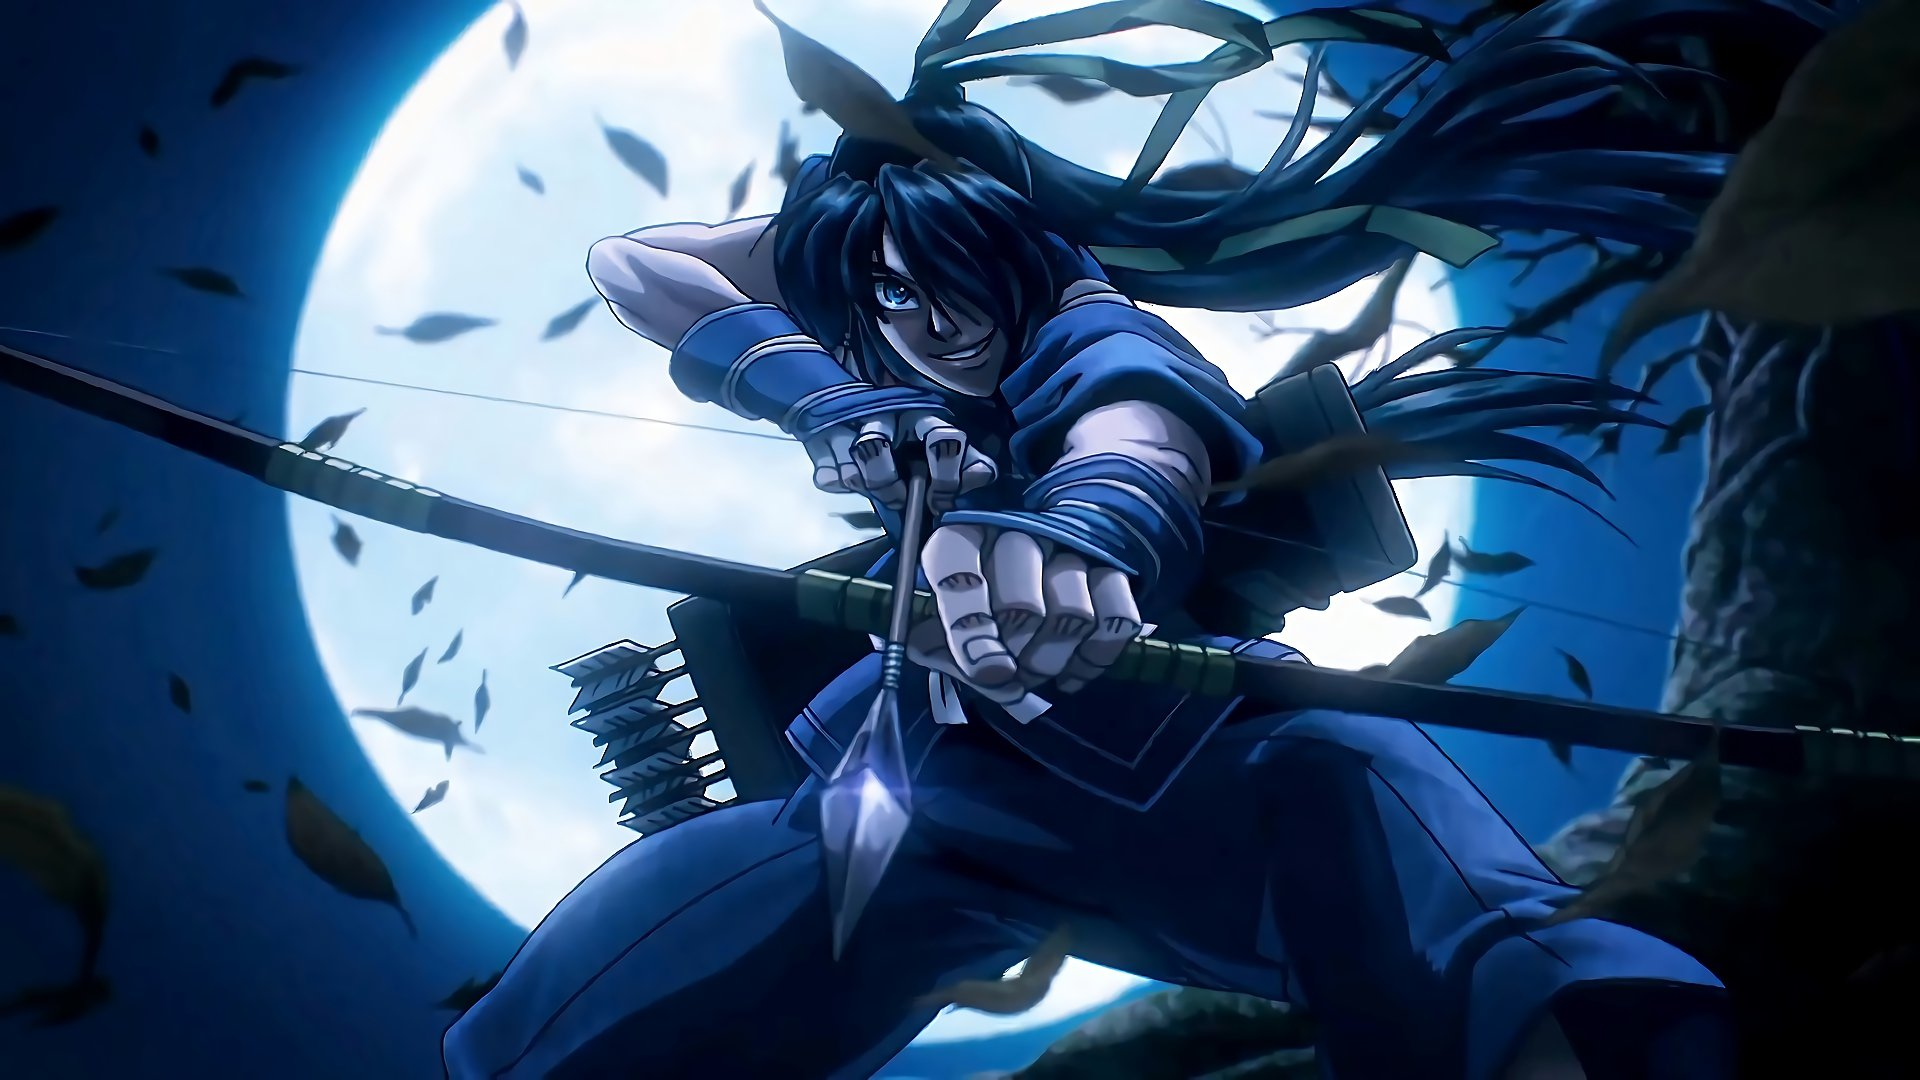 Free Drifters high quality wallpaper ID:149453 for hd 1920x1080 desktop